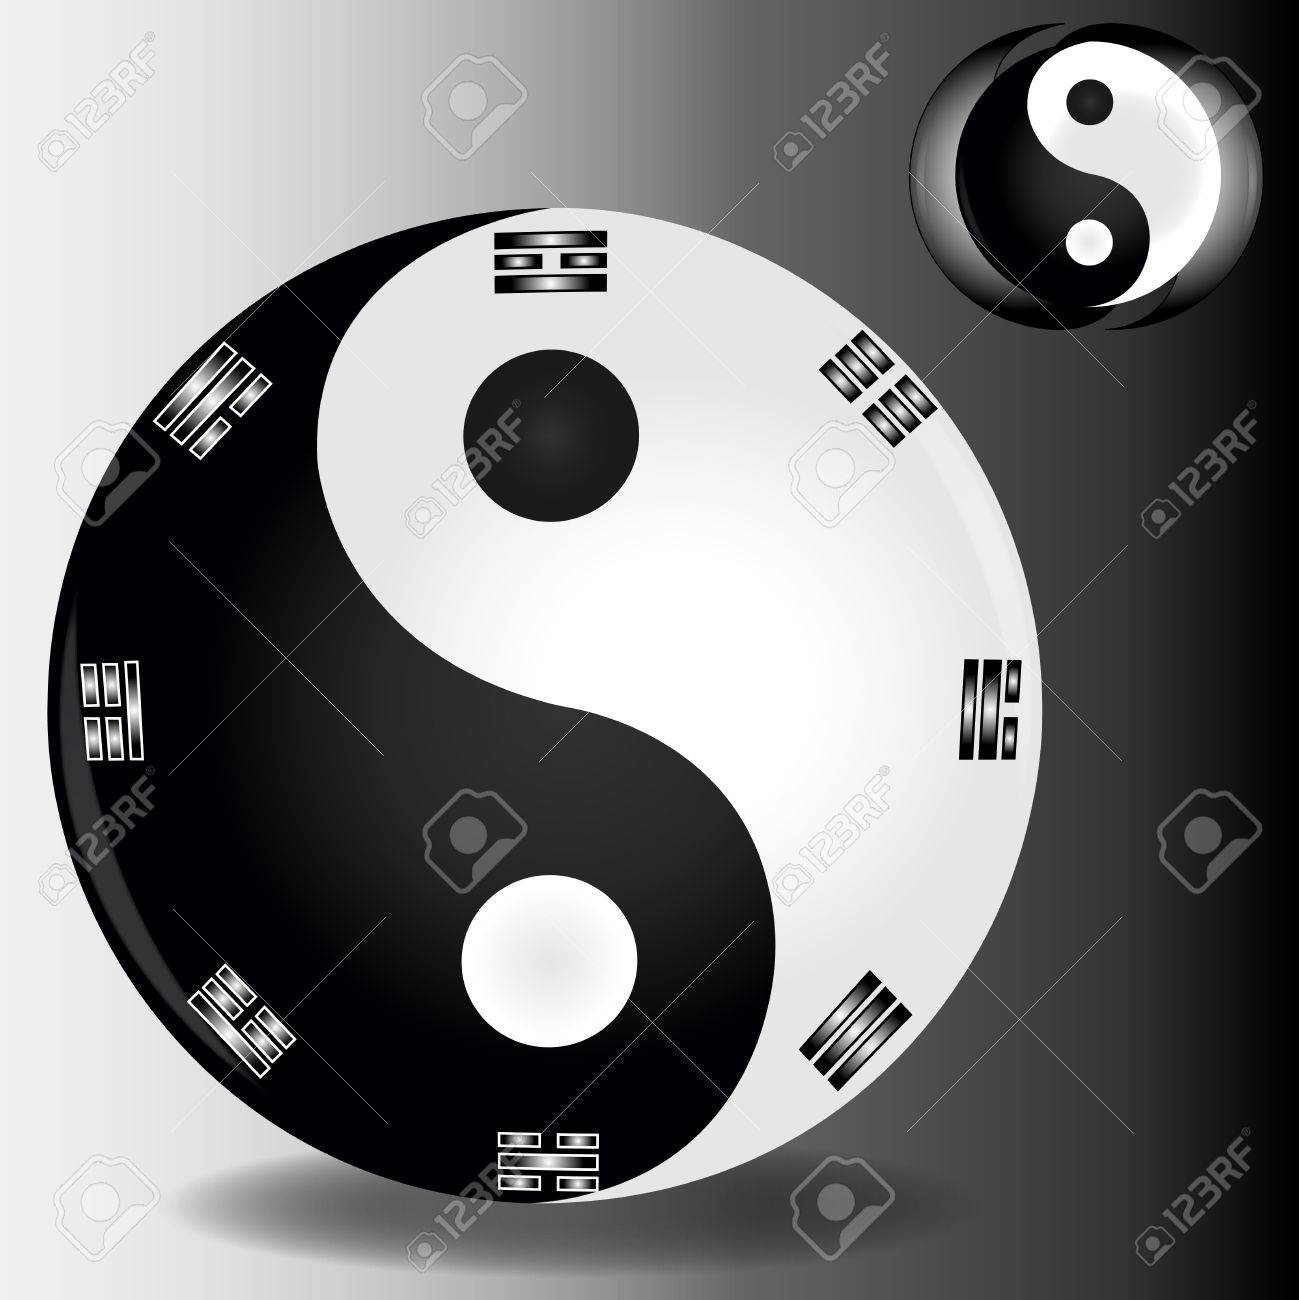 harmony sign Ying and YANG as symbol of balance of the Universe Stock Vector - 23863283